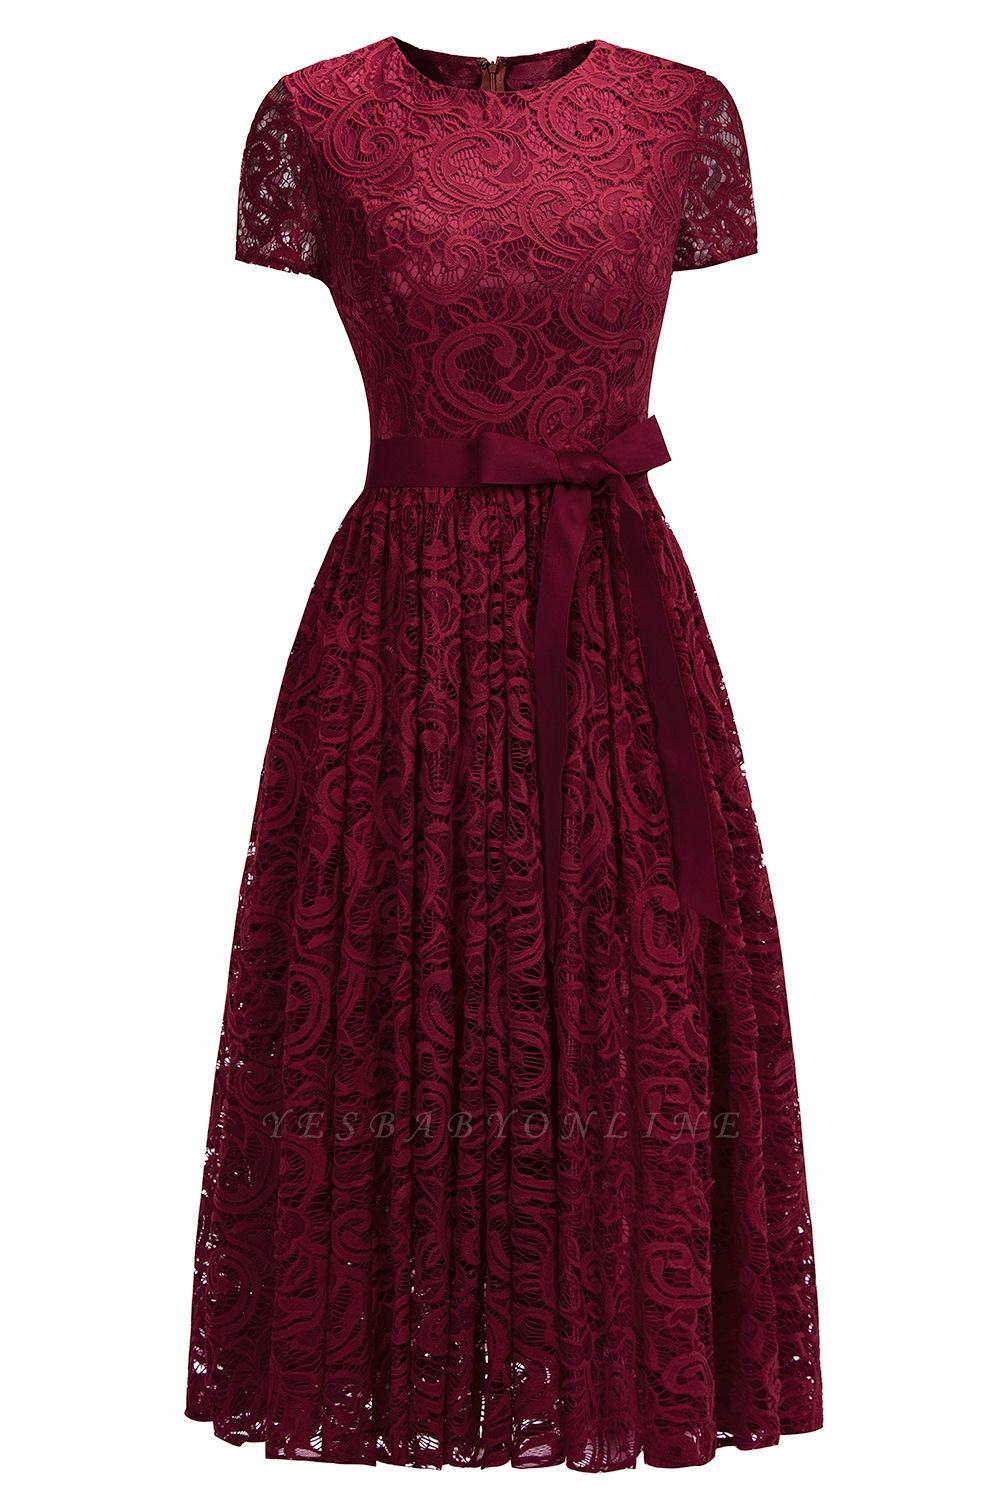 Short Sleeves Sheath Sexy Red Lace Prom Dresses with Ribbon Bow